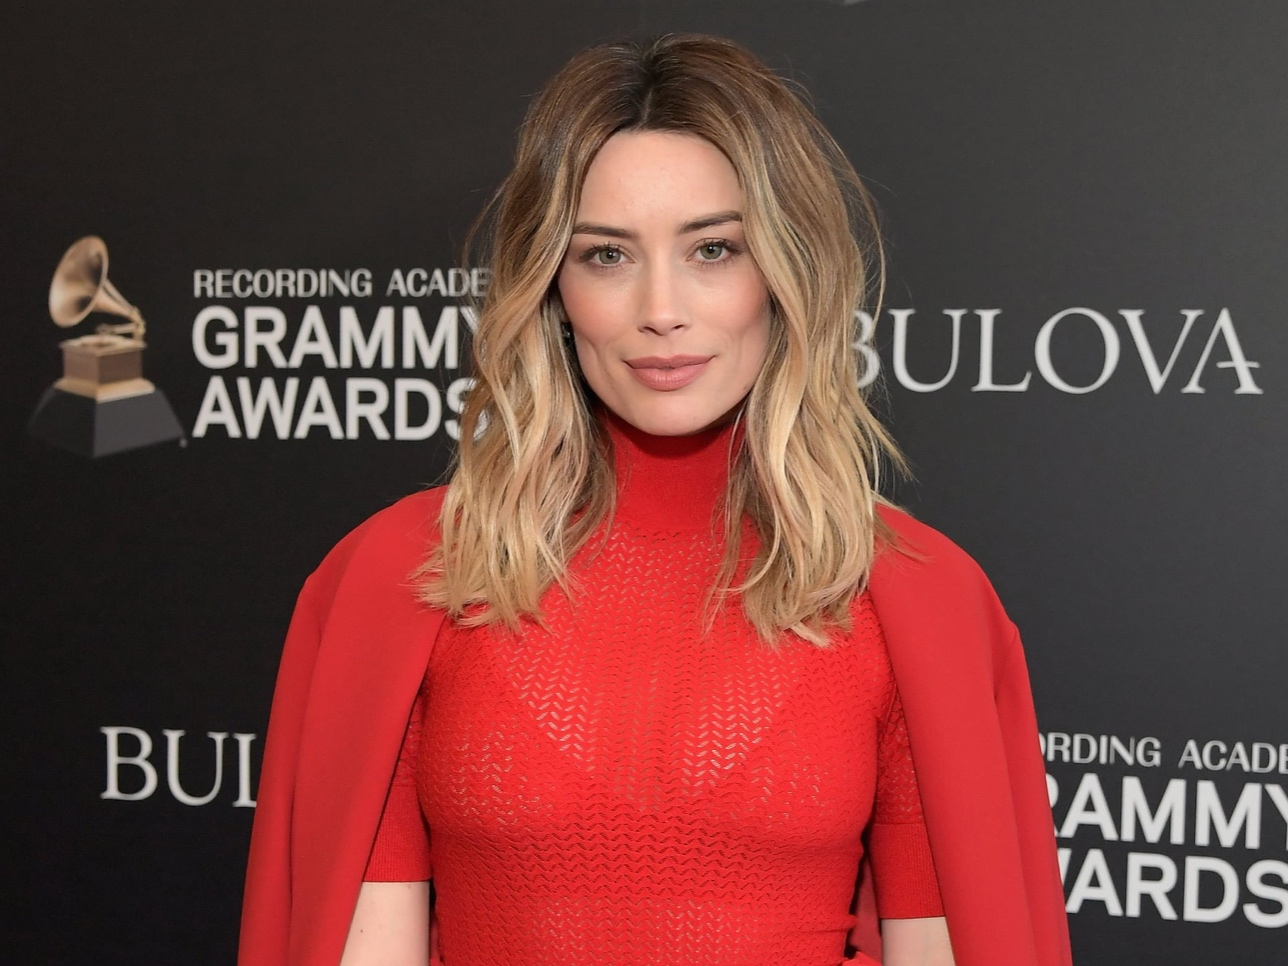 Arielle Vandenberg Has Some Advice on Why It's Never Too Late to Follow Your Dreams -